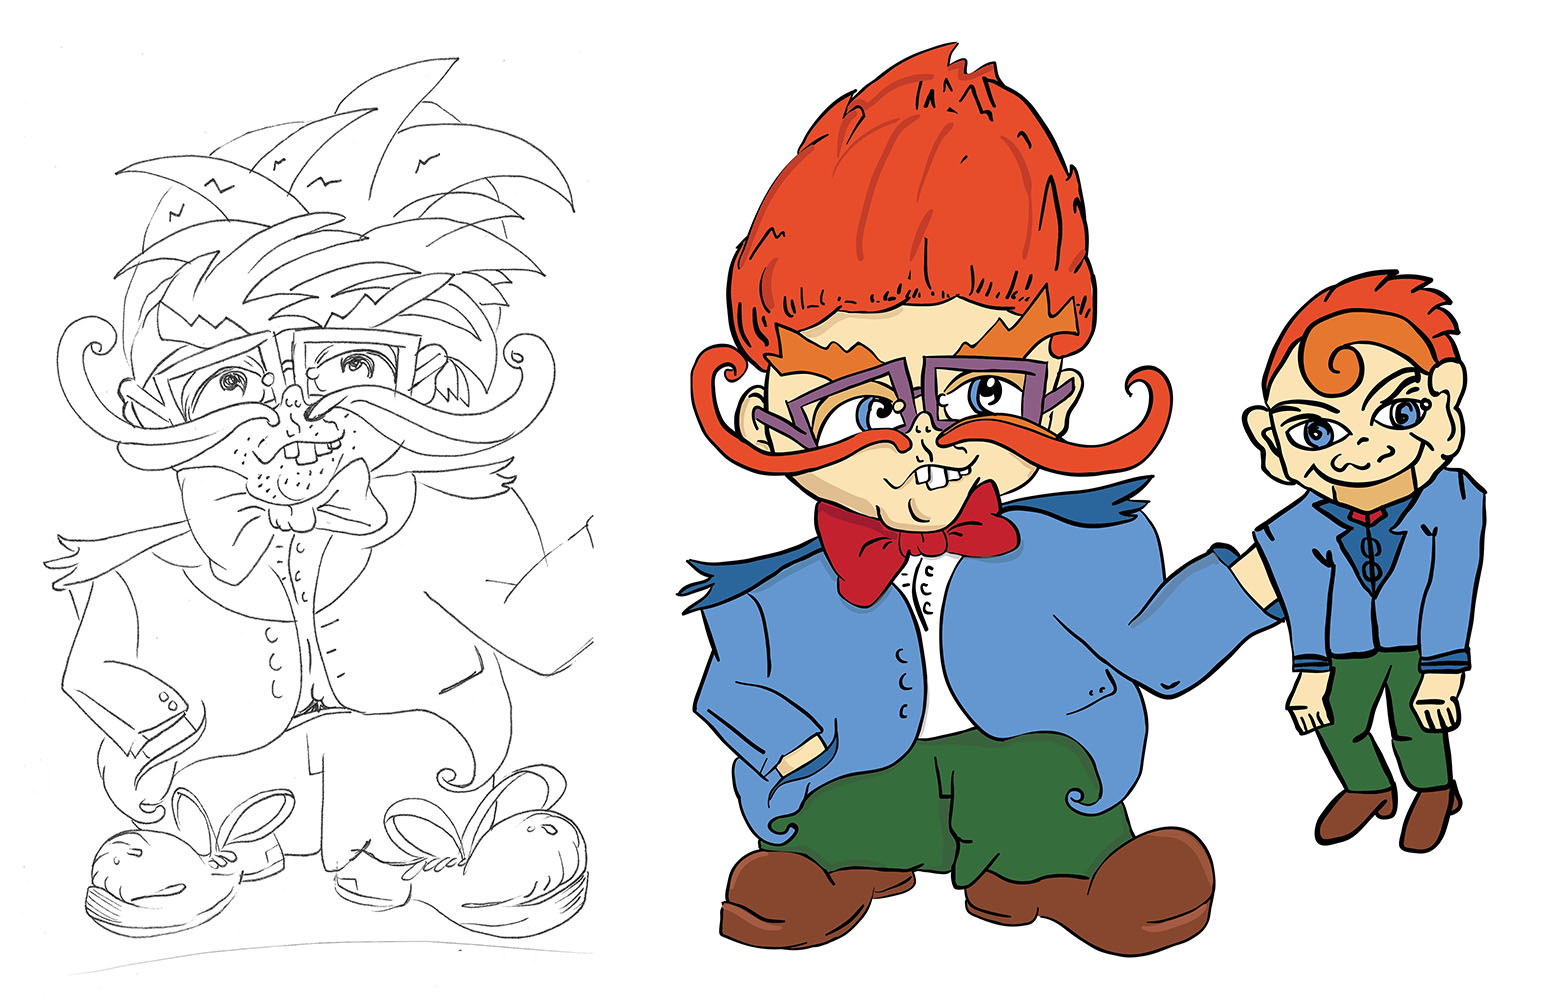 CHUCKIE THE VENTRILOQUIST {click to enlarge}